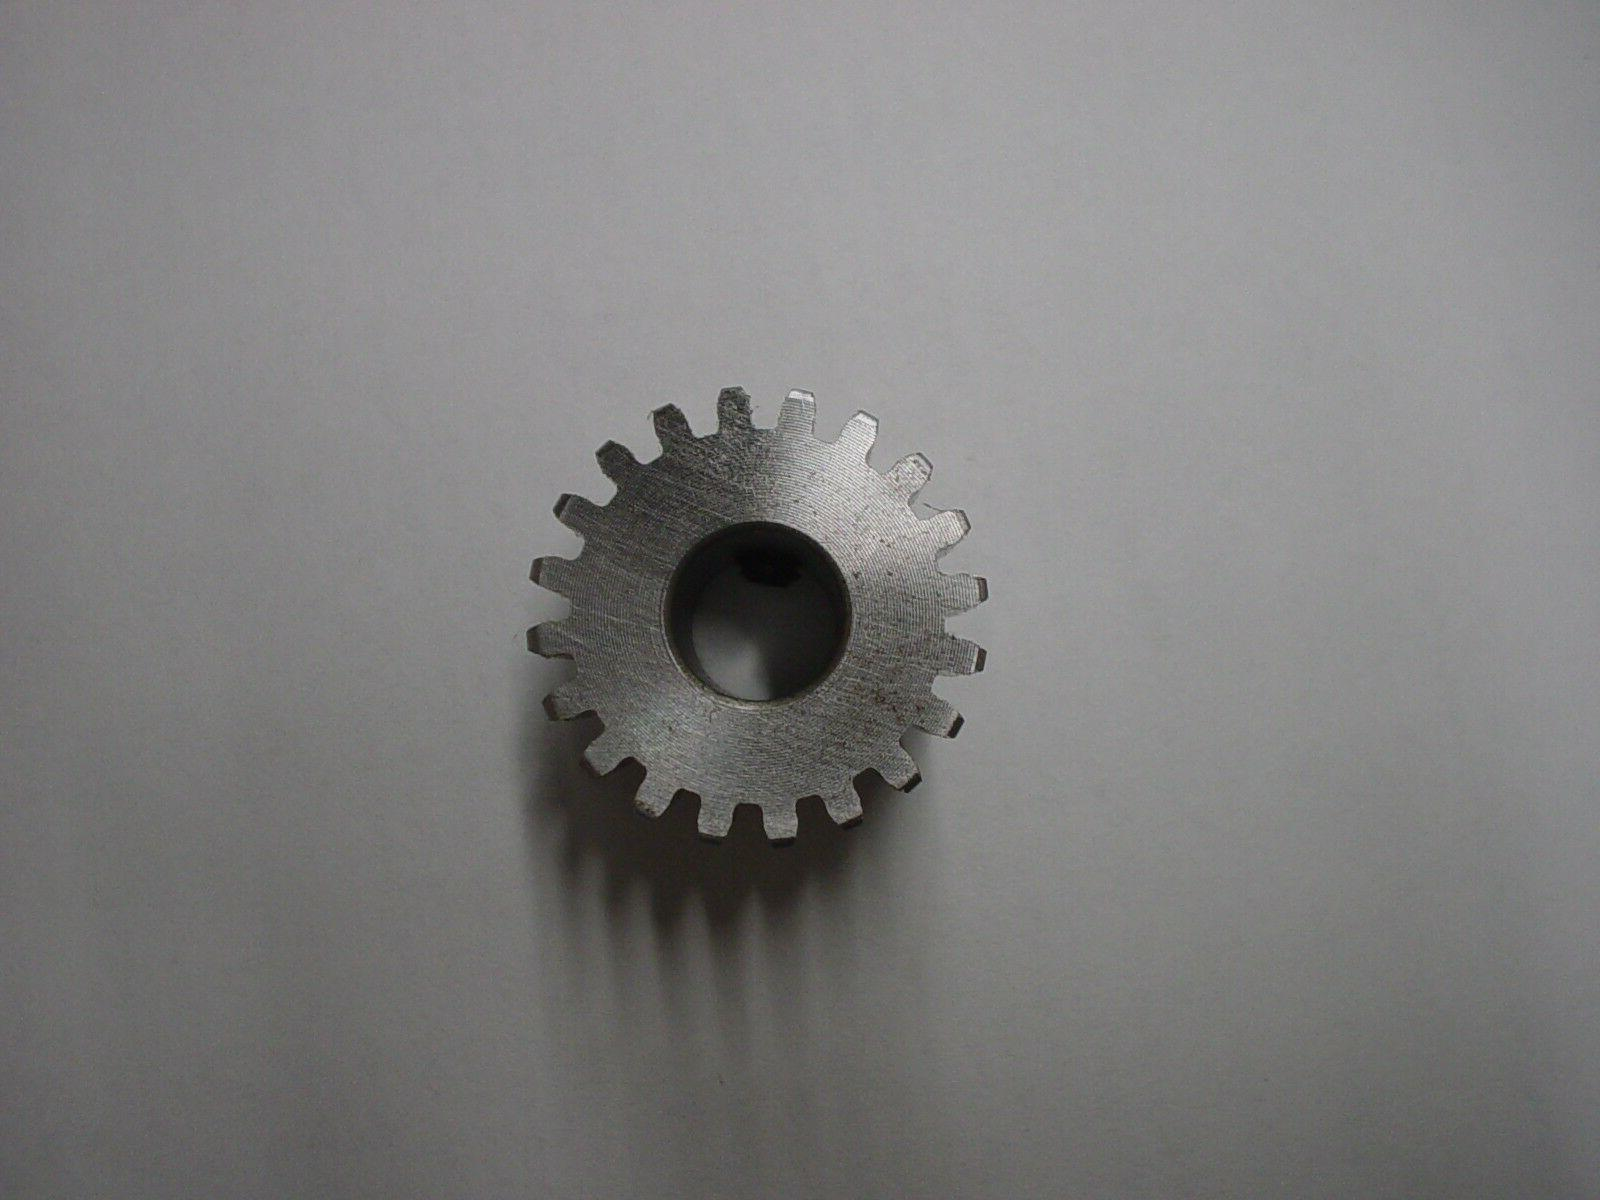 Boston Gear Spur Gear NB20B1/2 46036 20 teeth 16 Diametrical